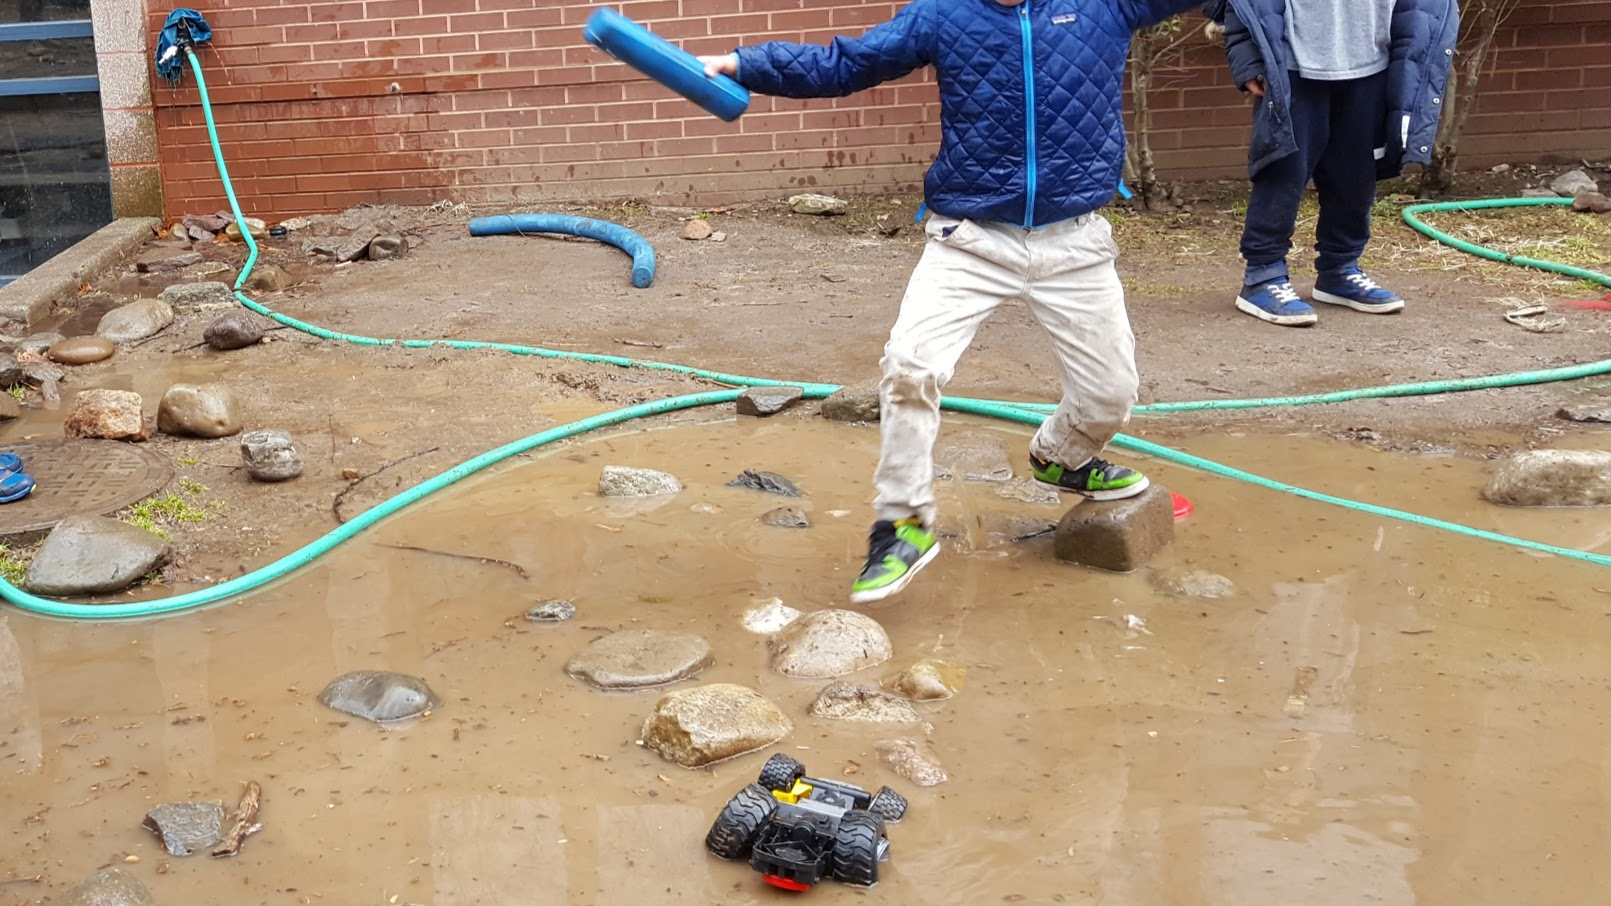 A child steps gingerly from one rock to another, maneuvering above a flooded muddy area. Another child stands on not flooded ground nearby, and a green hose snakes its way around the background of the image, and a toy truck sits partly submerged in the puddle in the foreground.